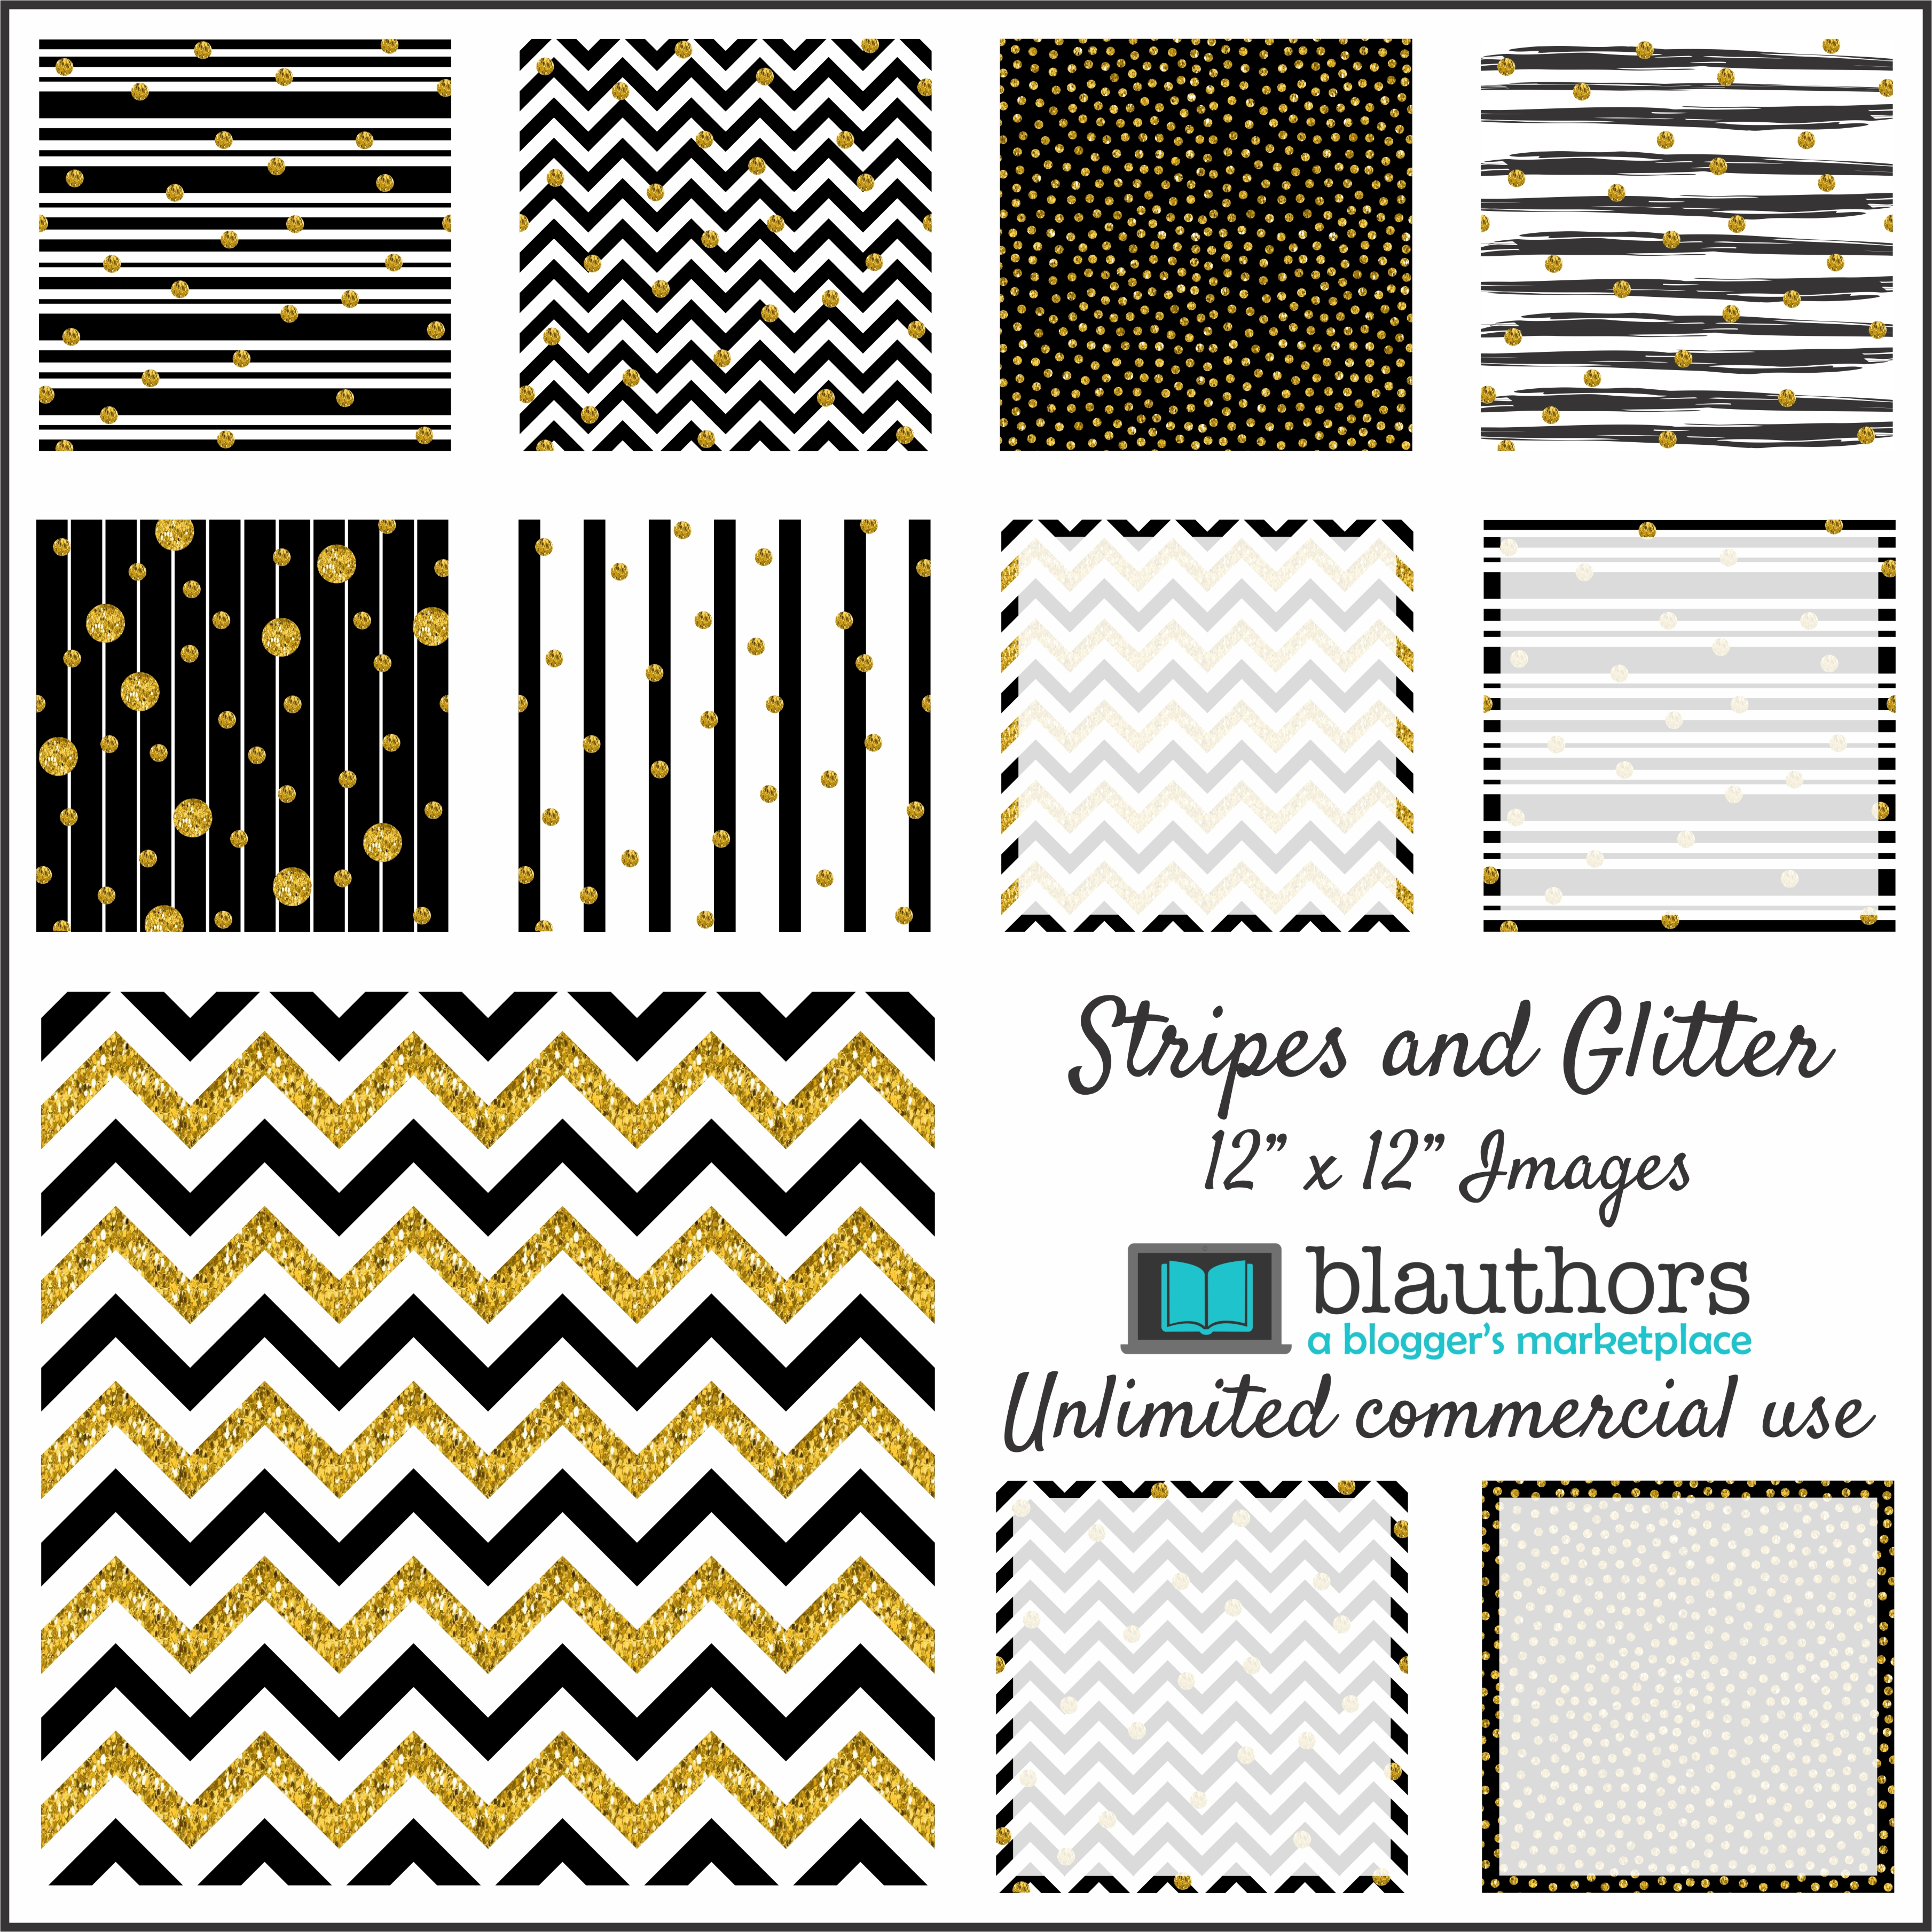 glitter and stripes background images commercial use